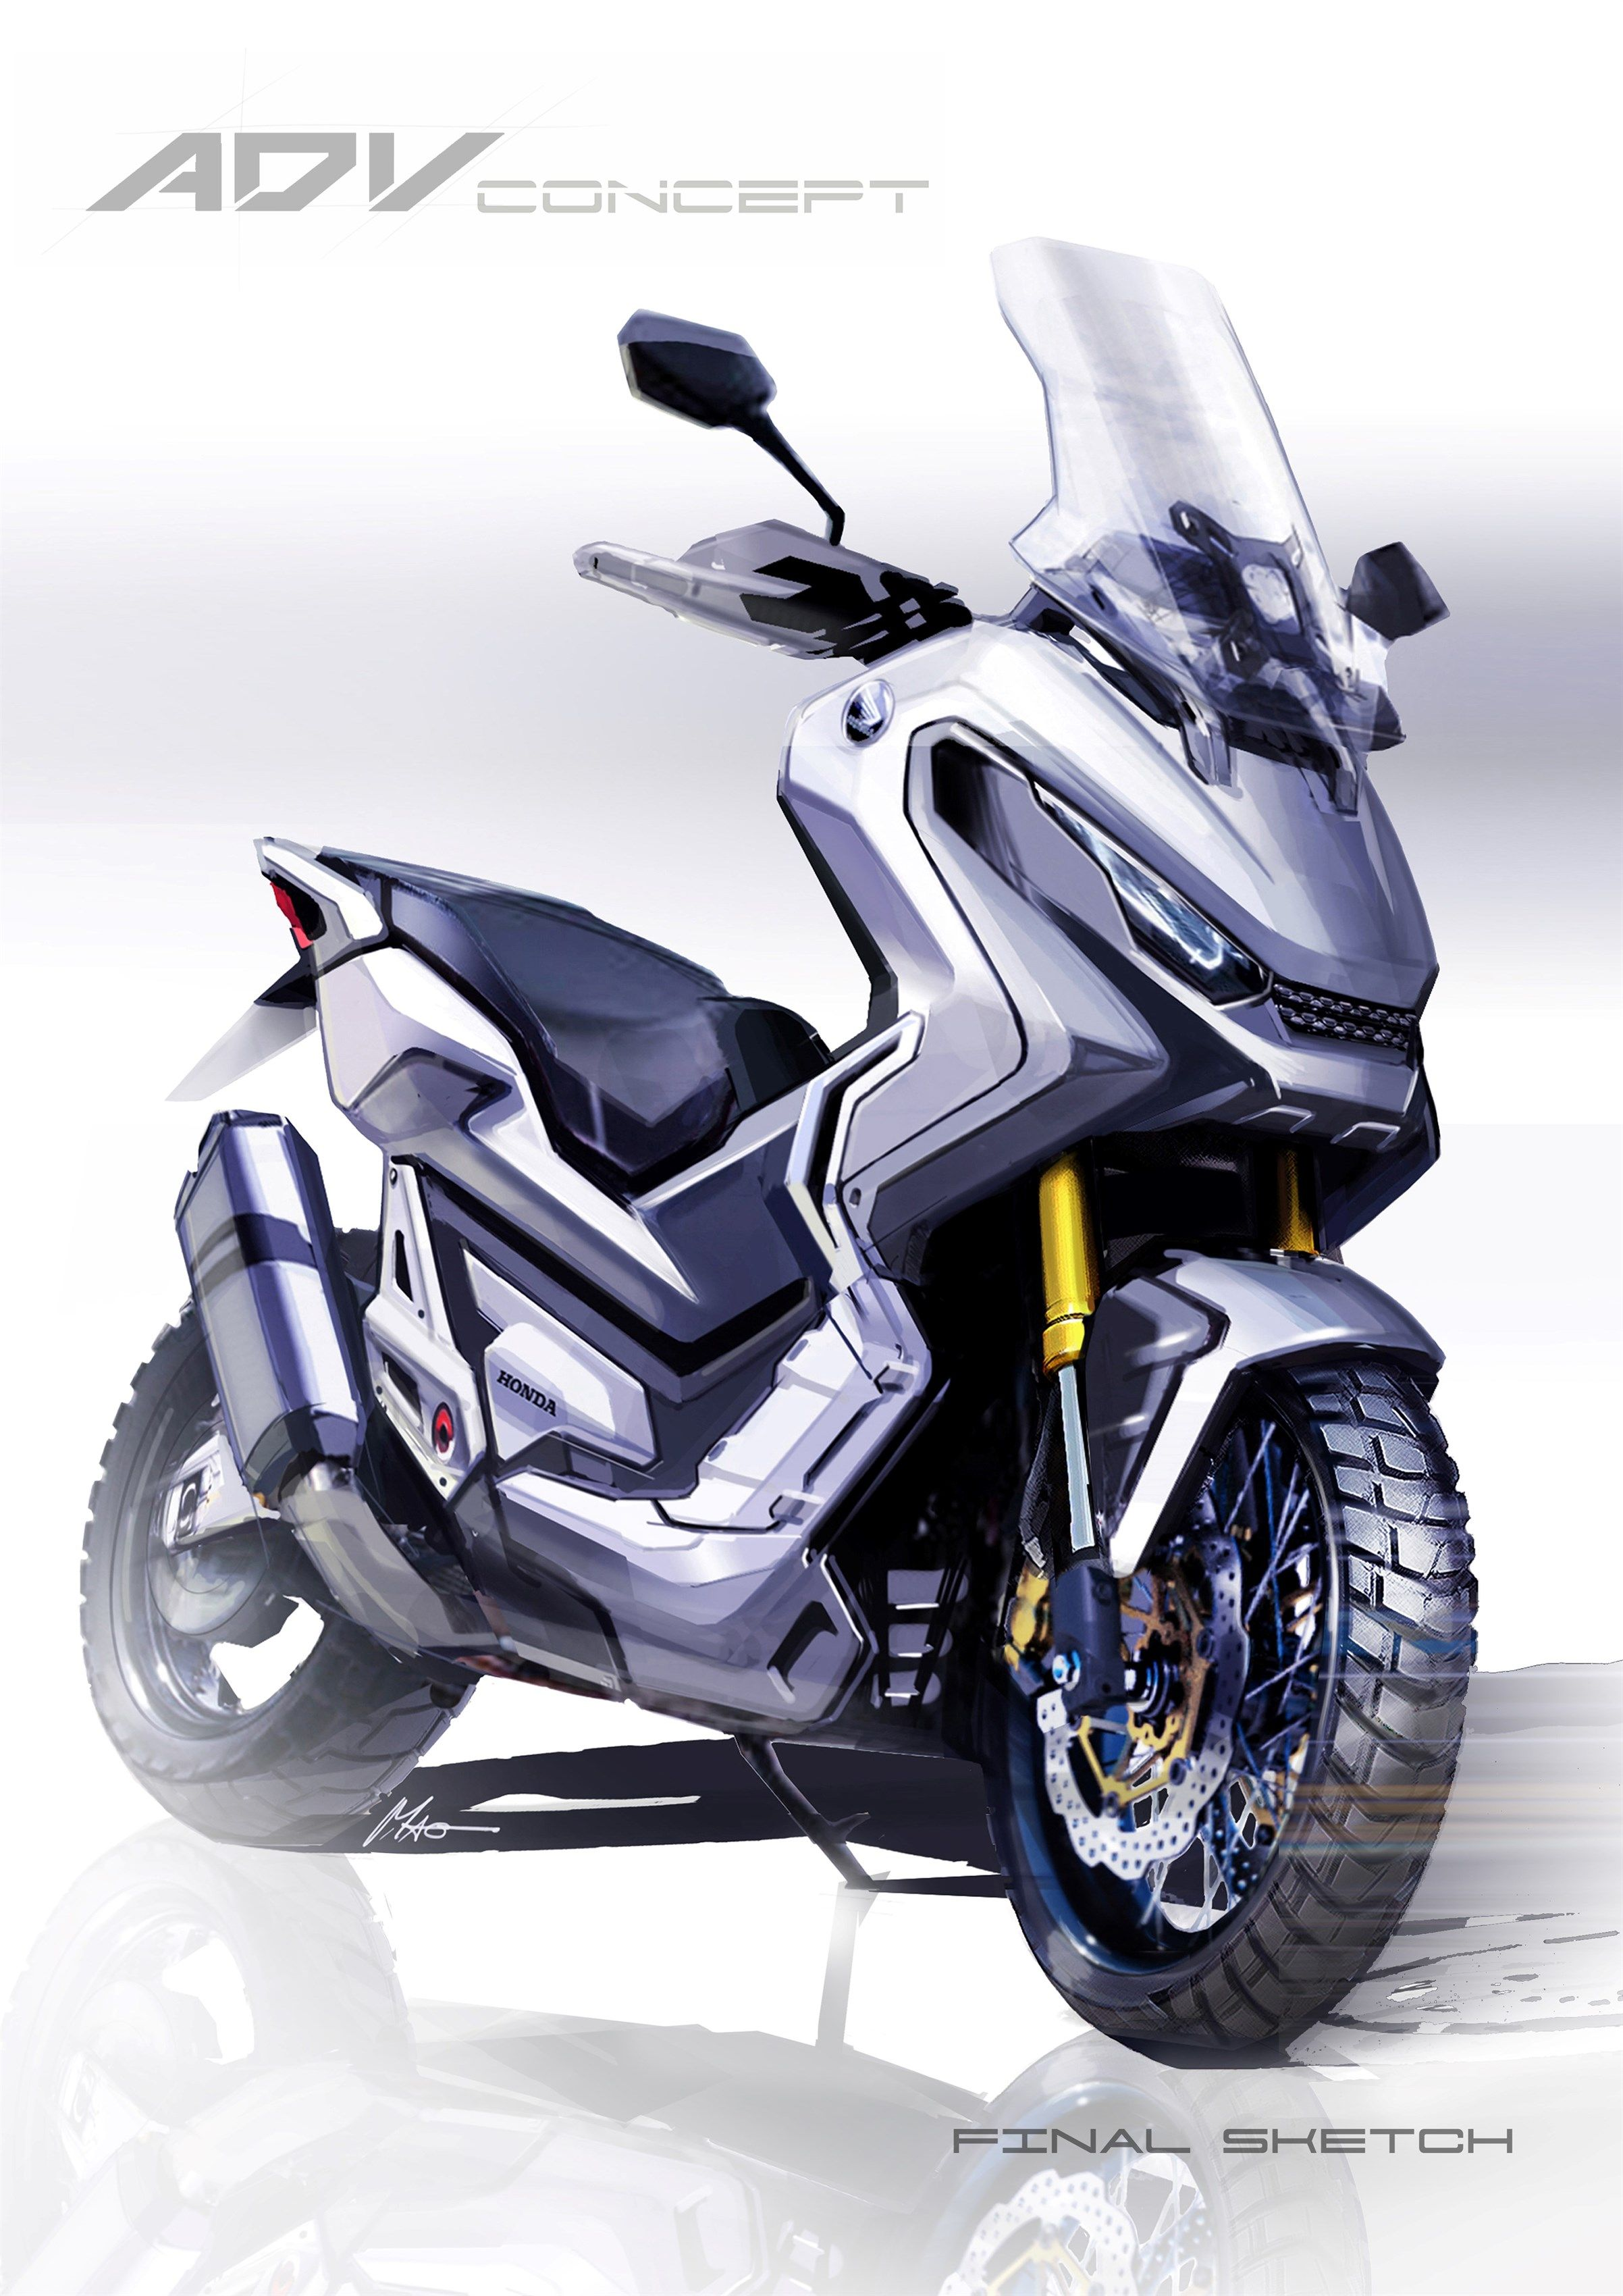 honda x adv 39 a scooter but not as we know it 39 motorhub bike concept scooter pinterest. Black Bedroom Furniture Sets. Home Design Ideas